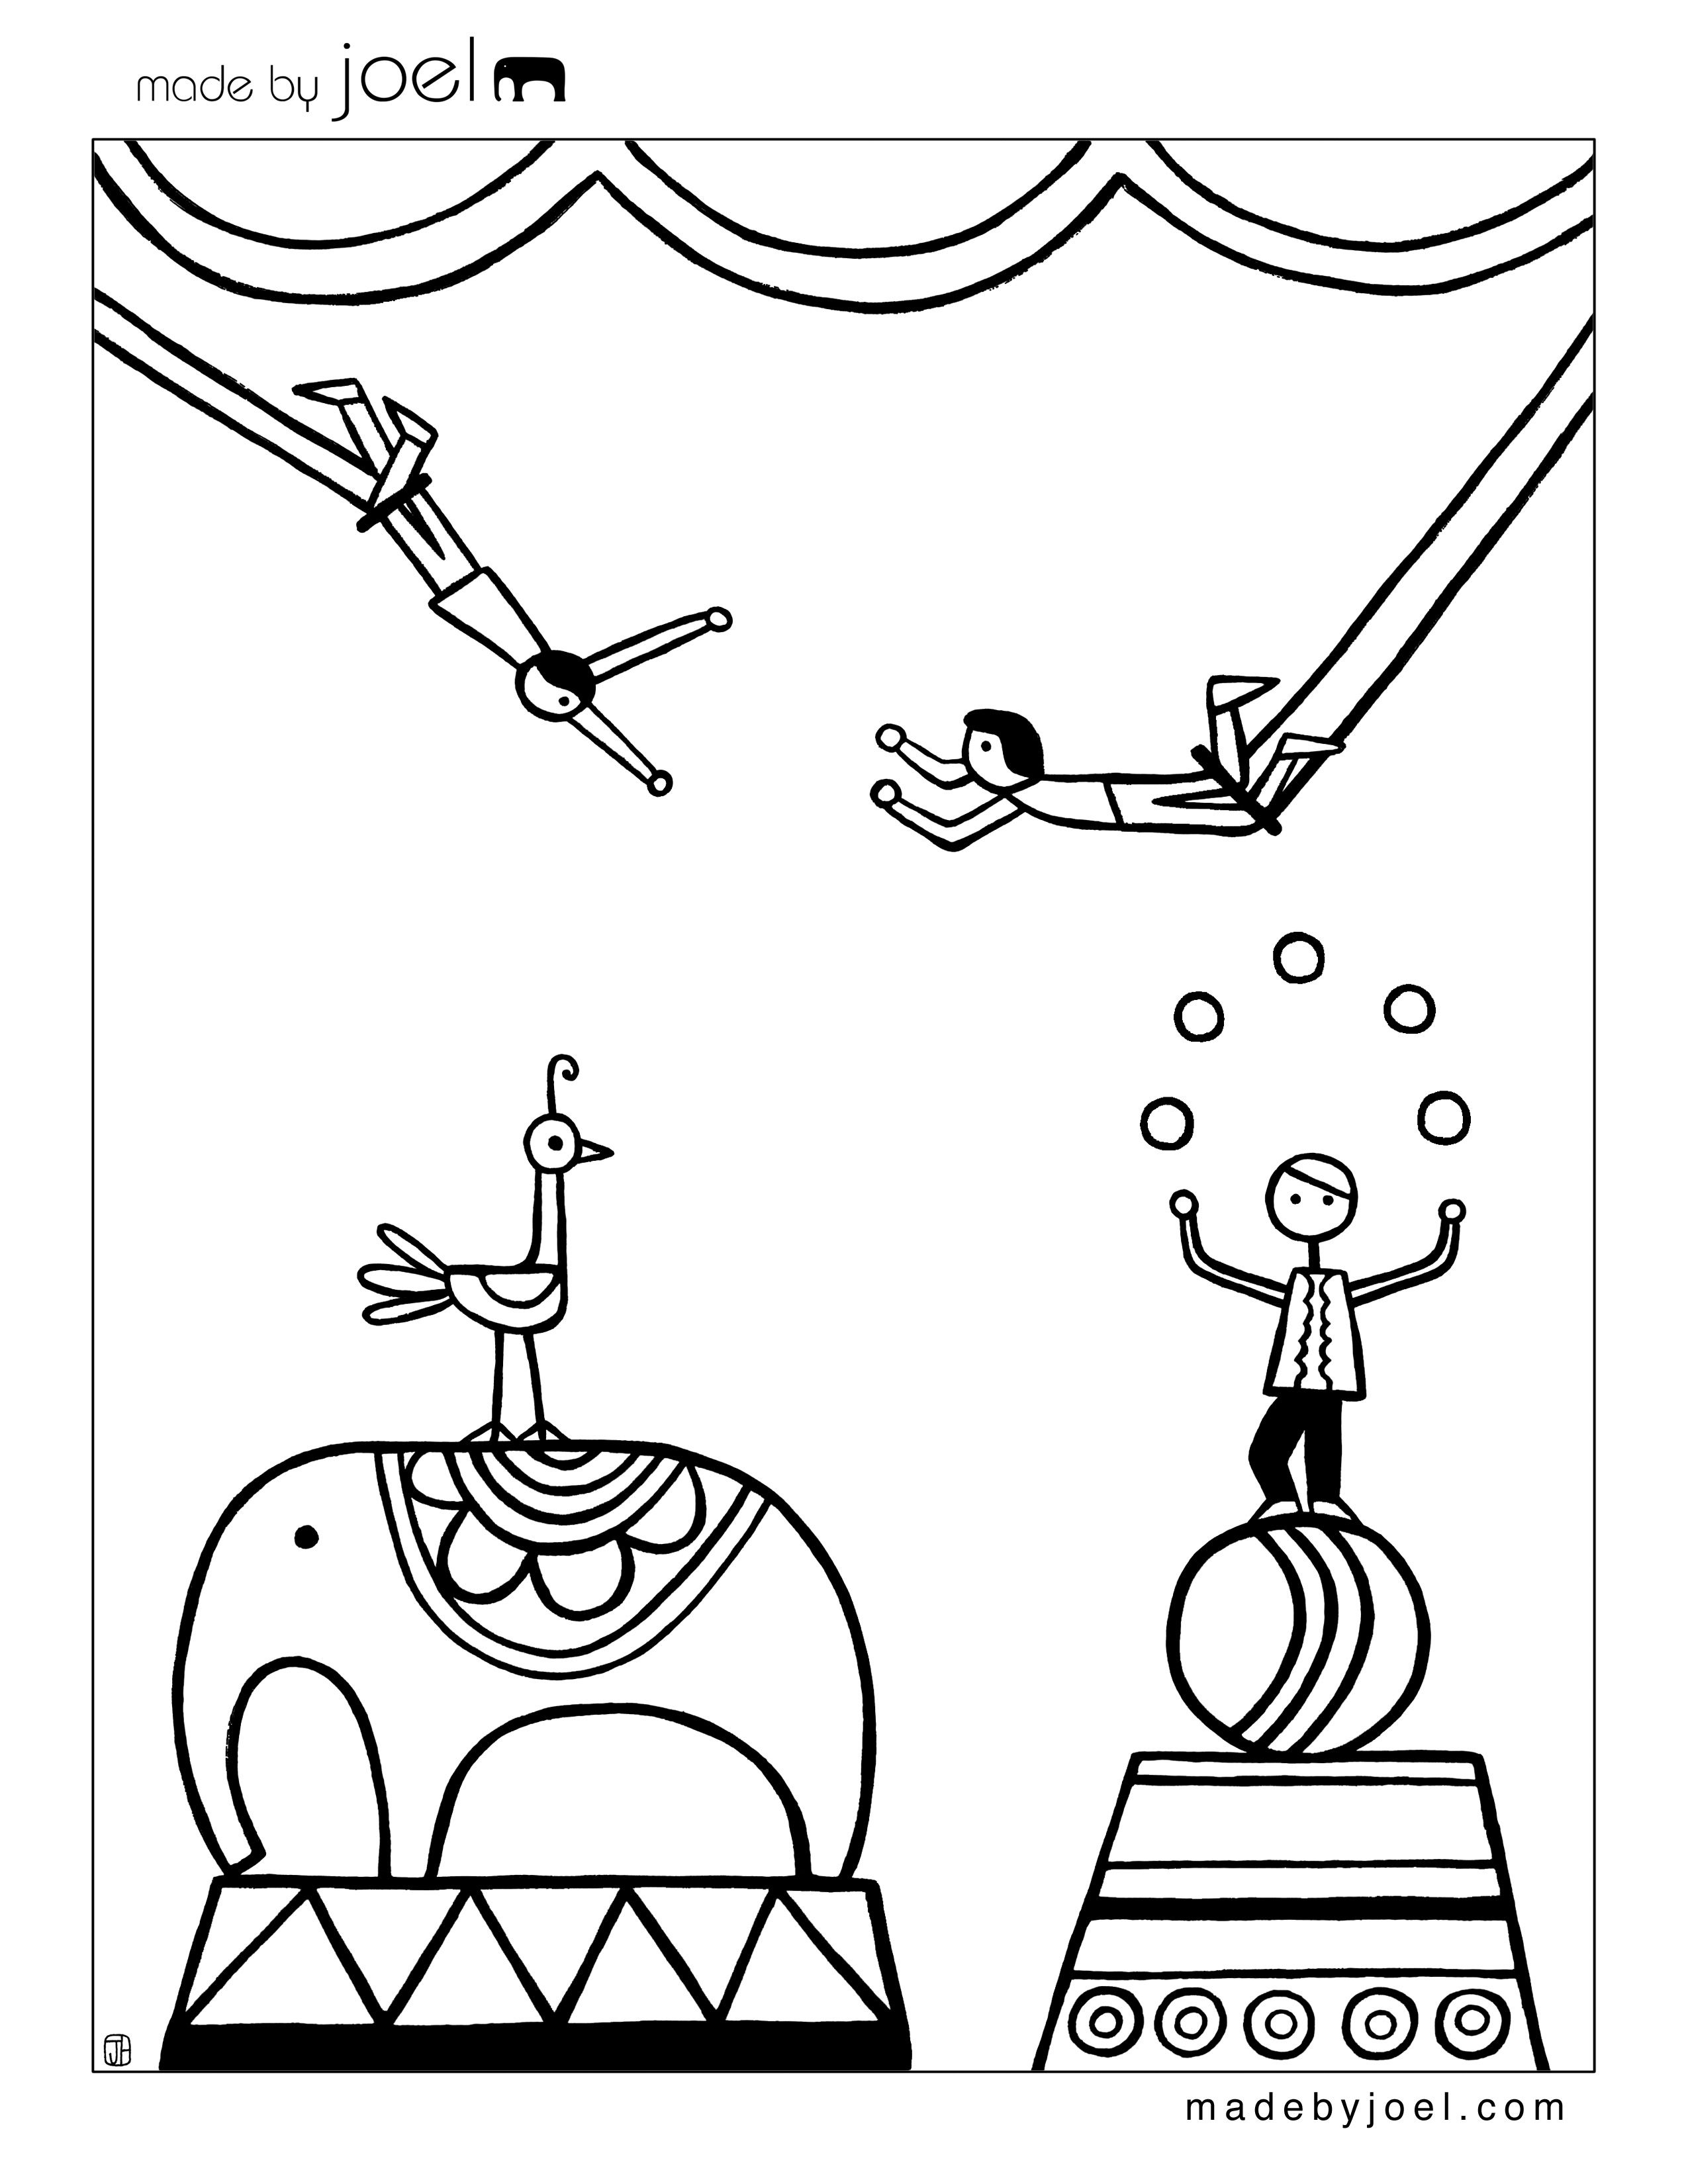 New Circus Coloring Sheets Made By Joel